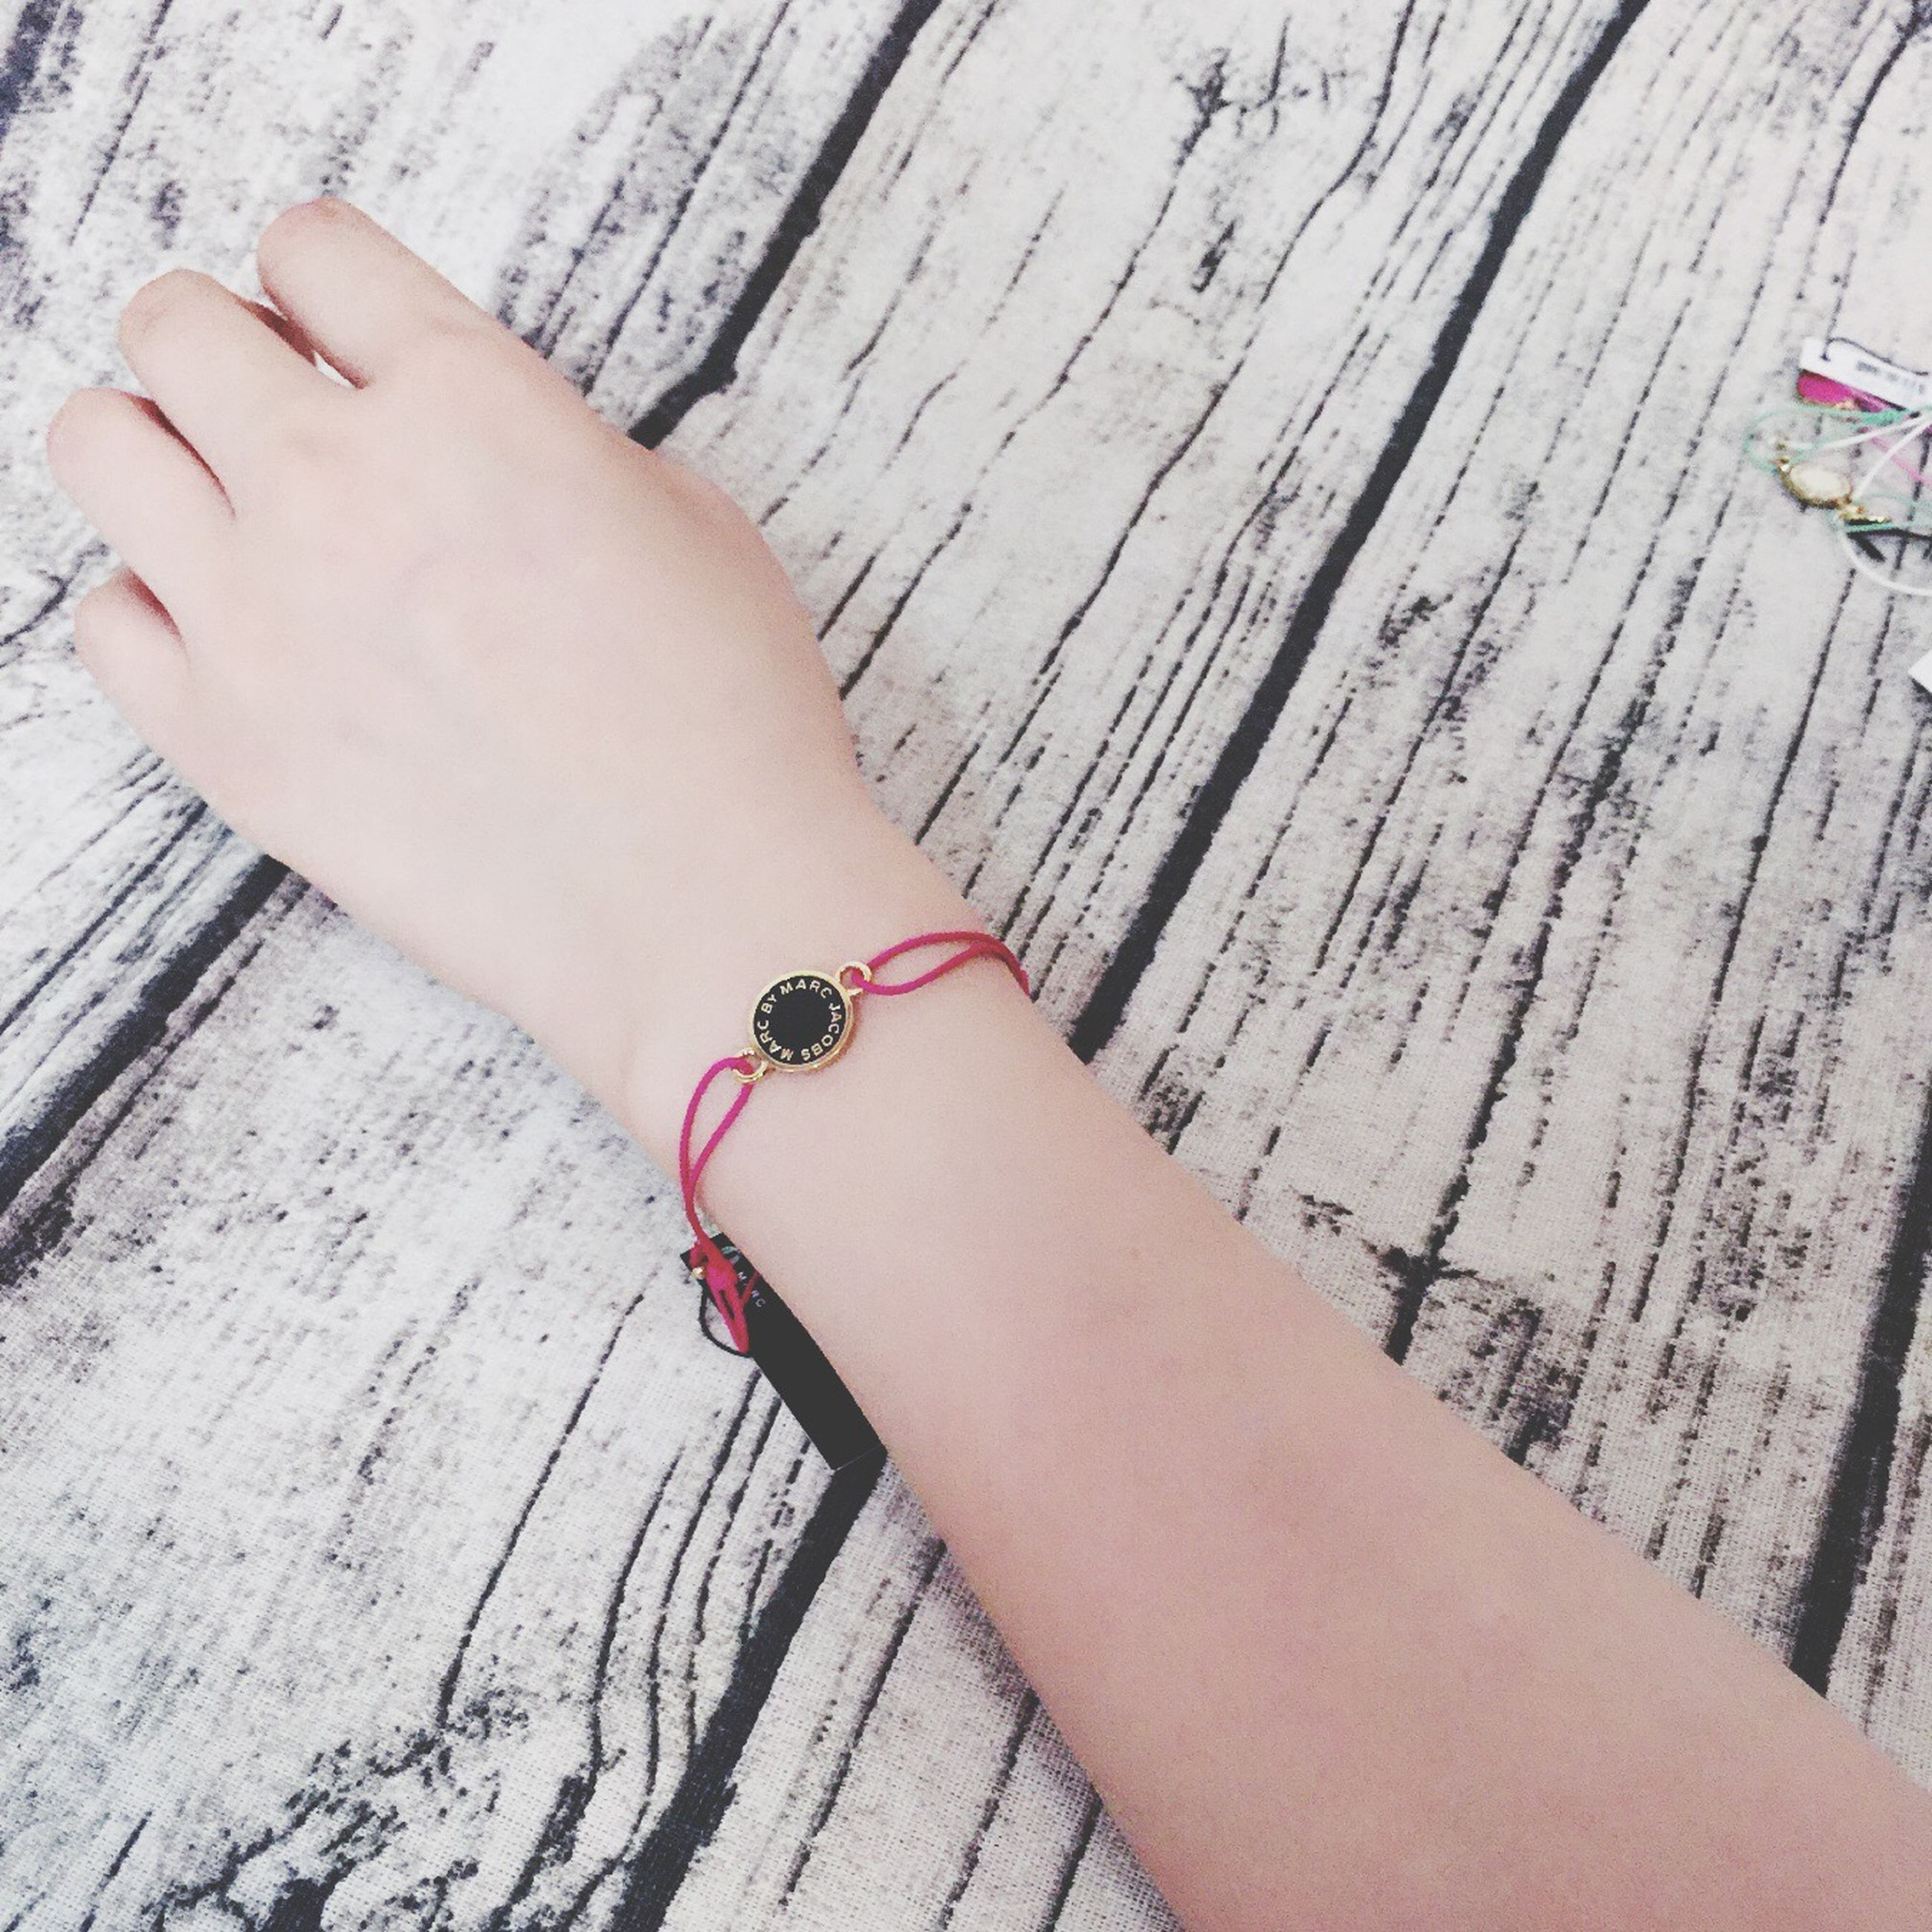 person, relaxation, personal perspective, one woman only, bracelet, human skin, day, solitude, fashionable